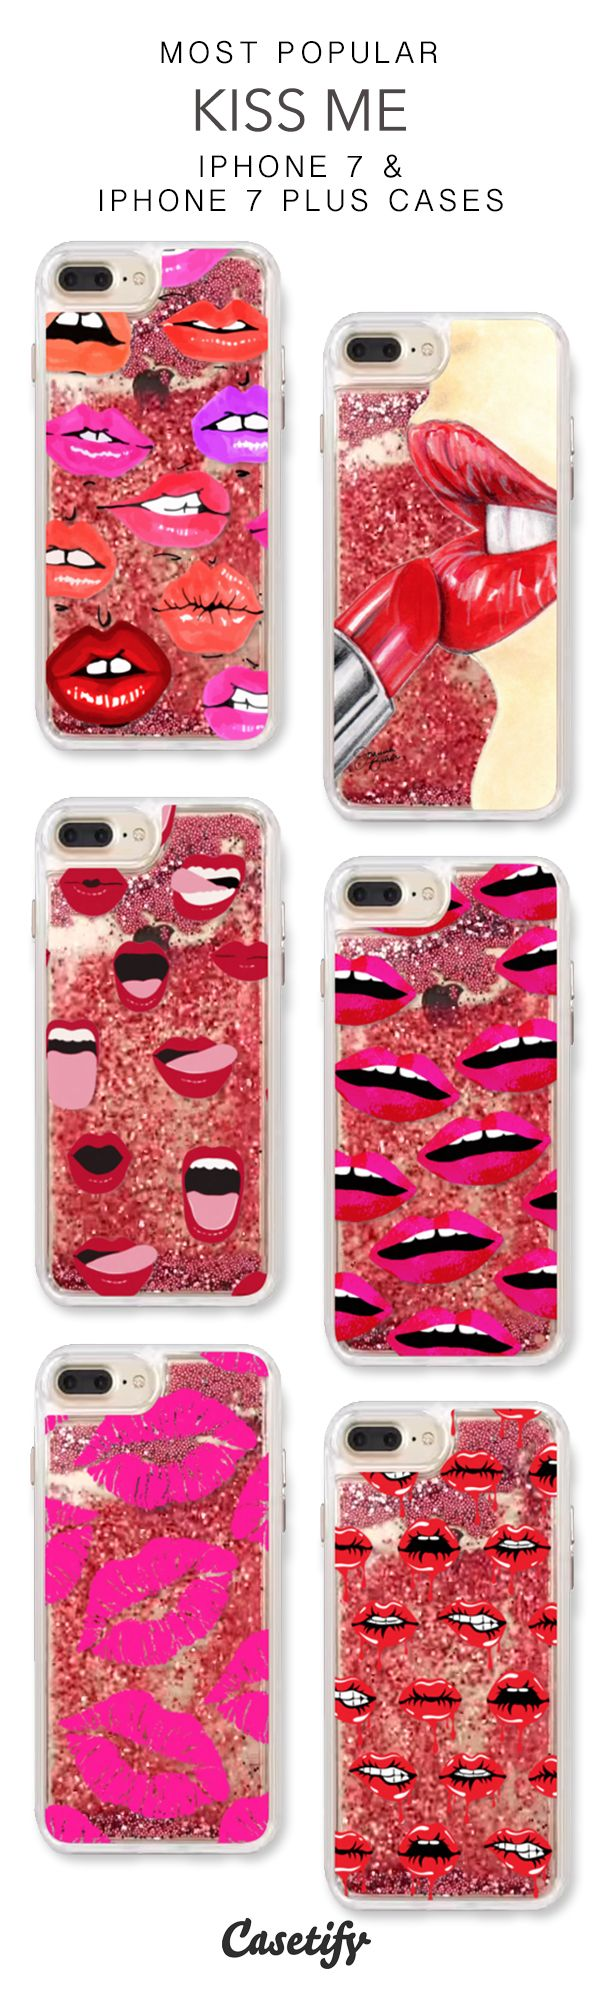 Most Popular Kiss Me iPhone 7 Cases & iPhone 7 Plus Cases. More protective liquid glitter lipstick iPhone case here > https://www.casetify.com/en_US/collections/iphone-7-glitter-cases#/?vc=ZK7gBrJzab